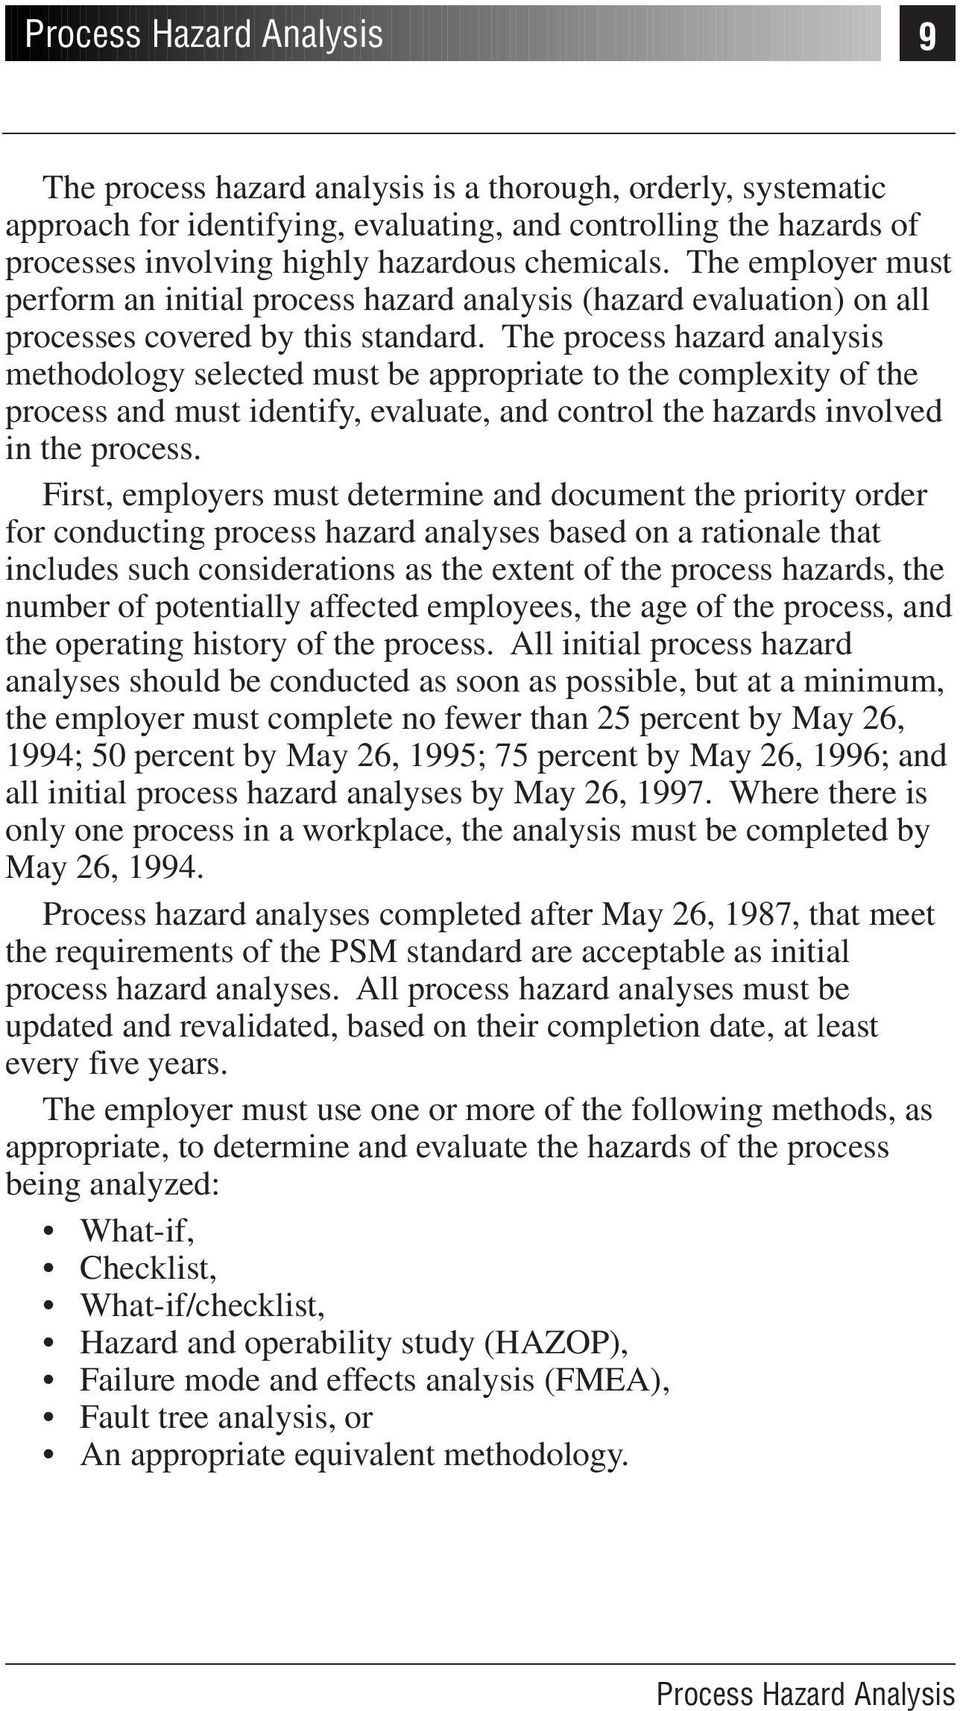 The process hazard analysis methodology selected must be appropriate to the complexity of the process and must identify, evaluate, and control the hazards involved in the process.